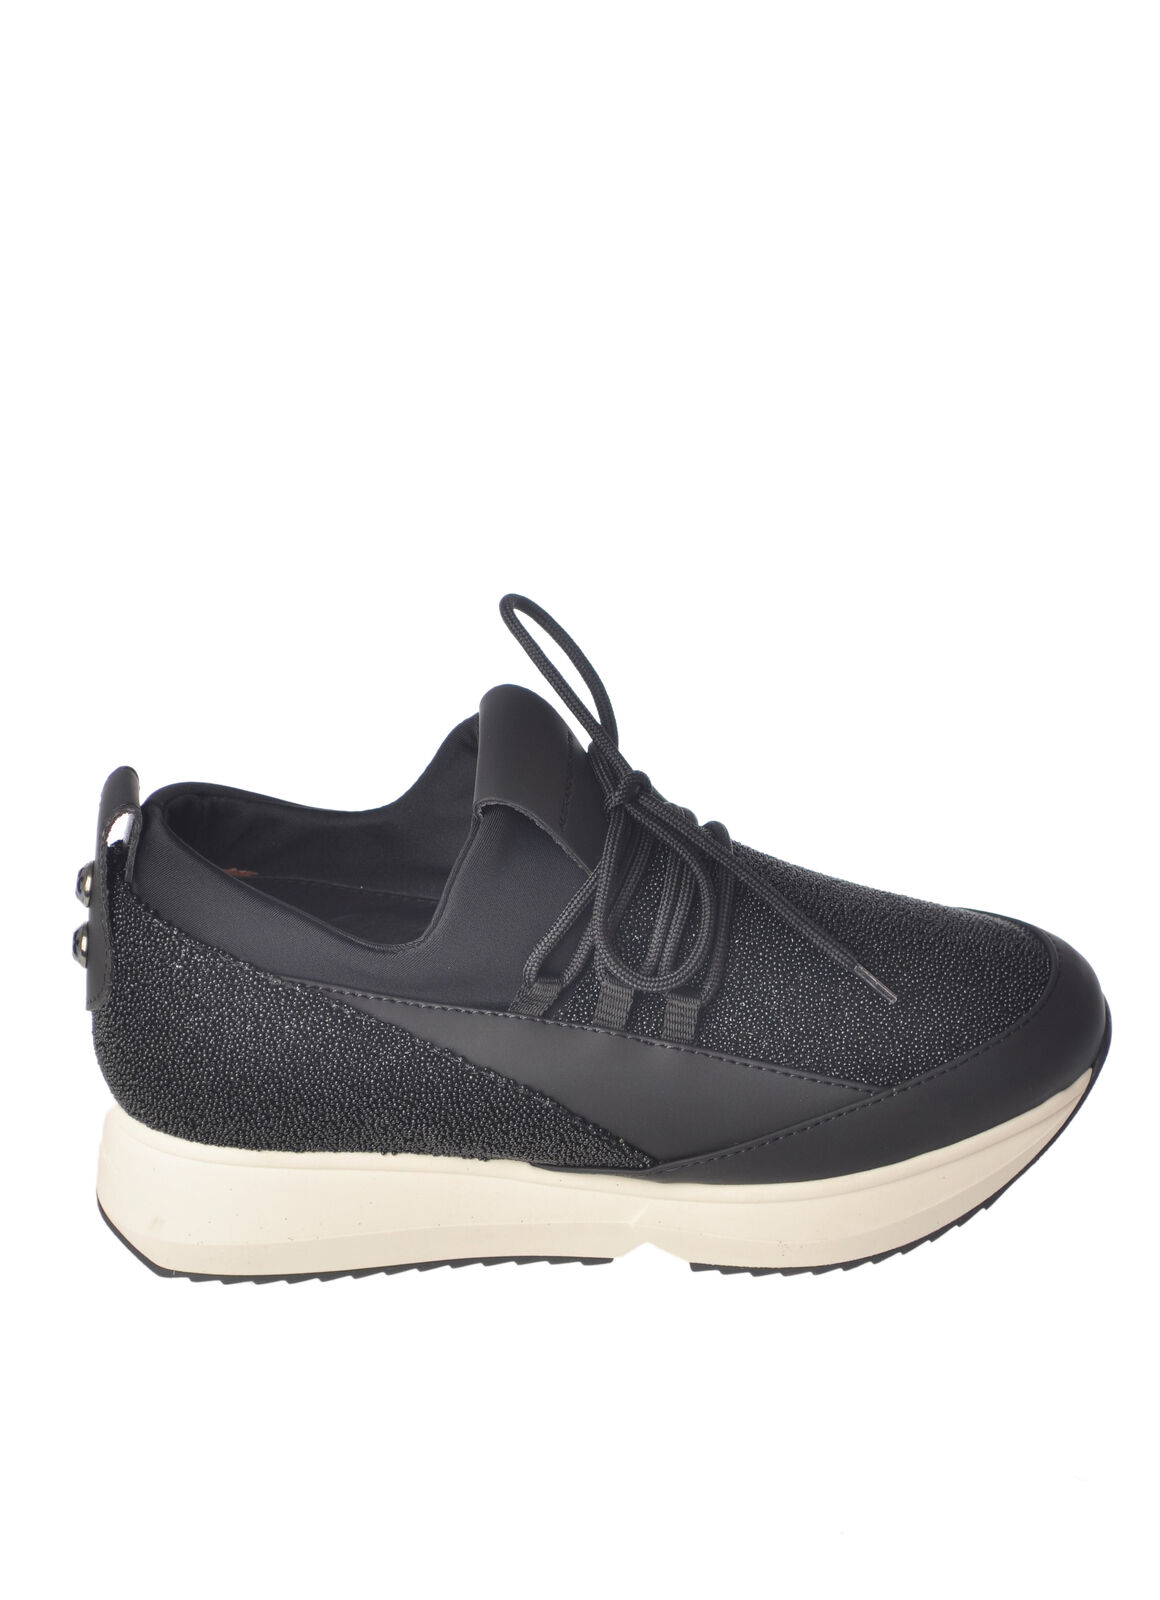 Alexander Smith  -  Sneakers - Female - Black - 4211327A184354